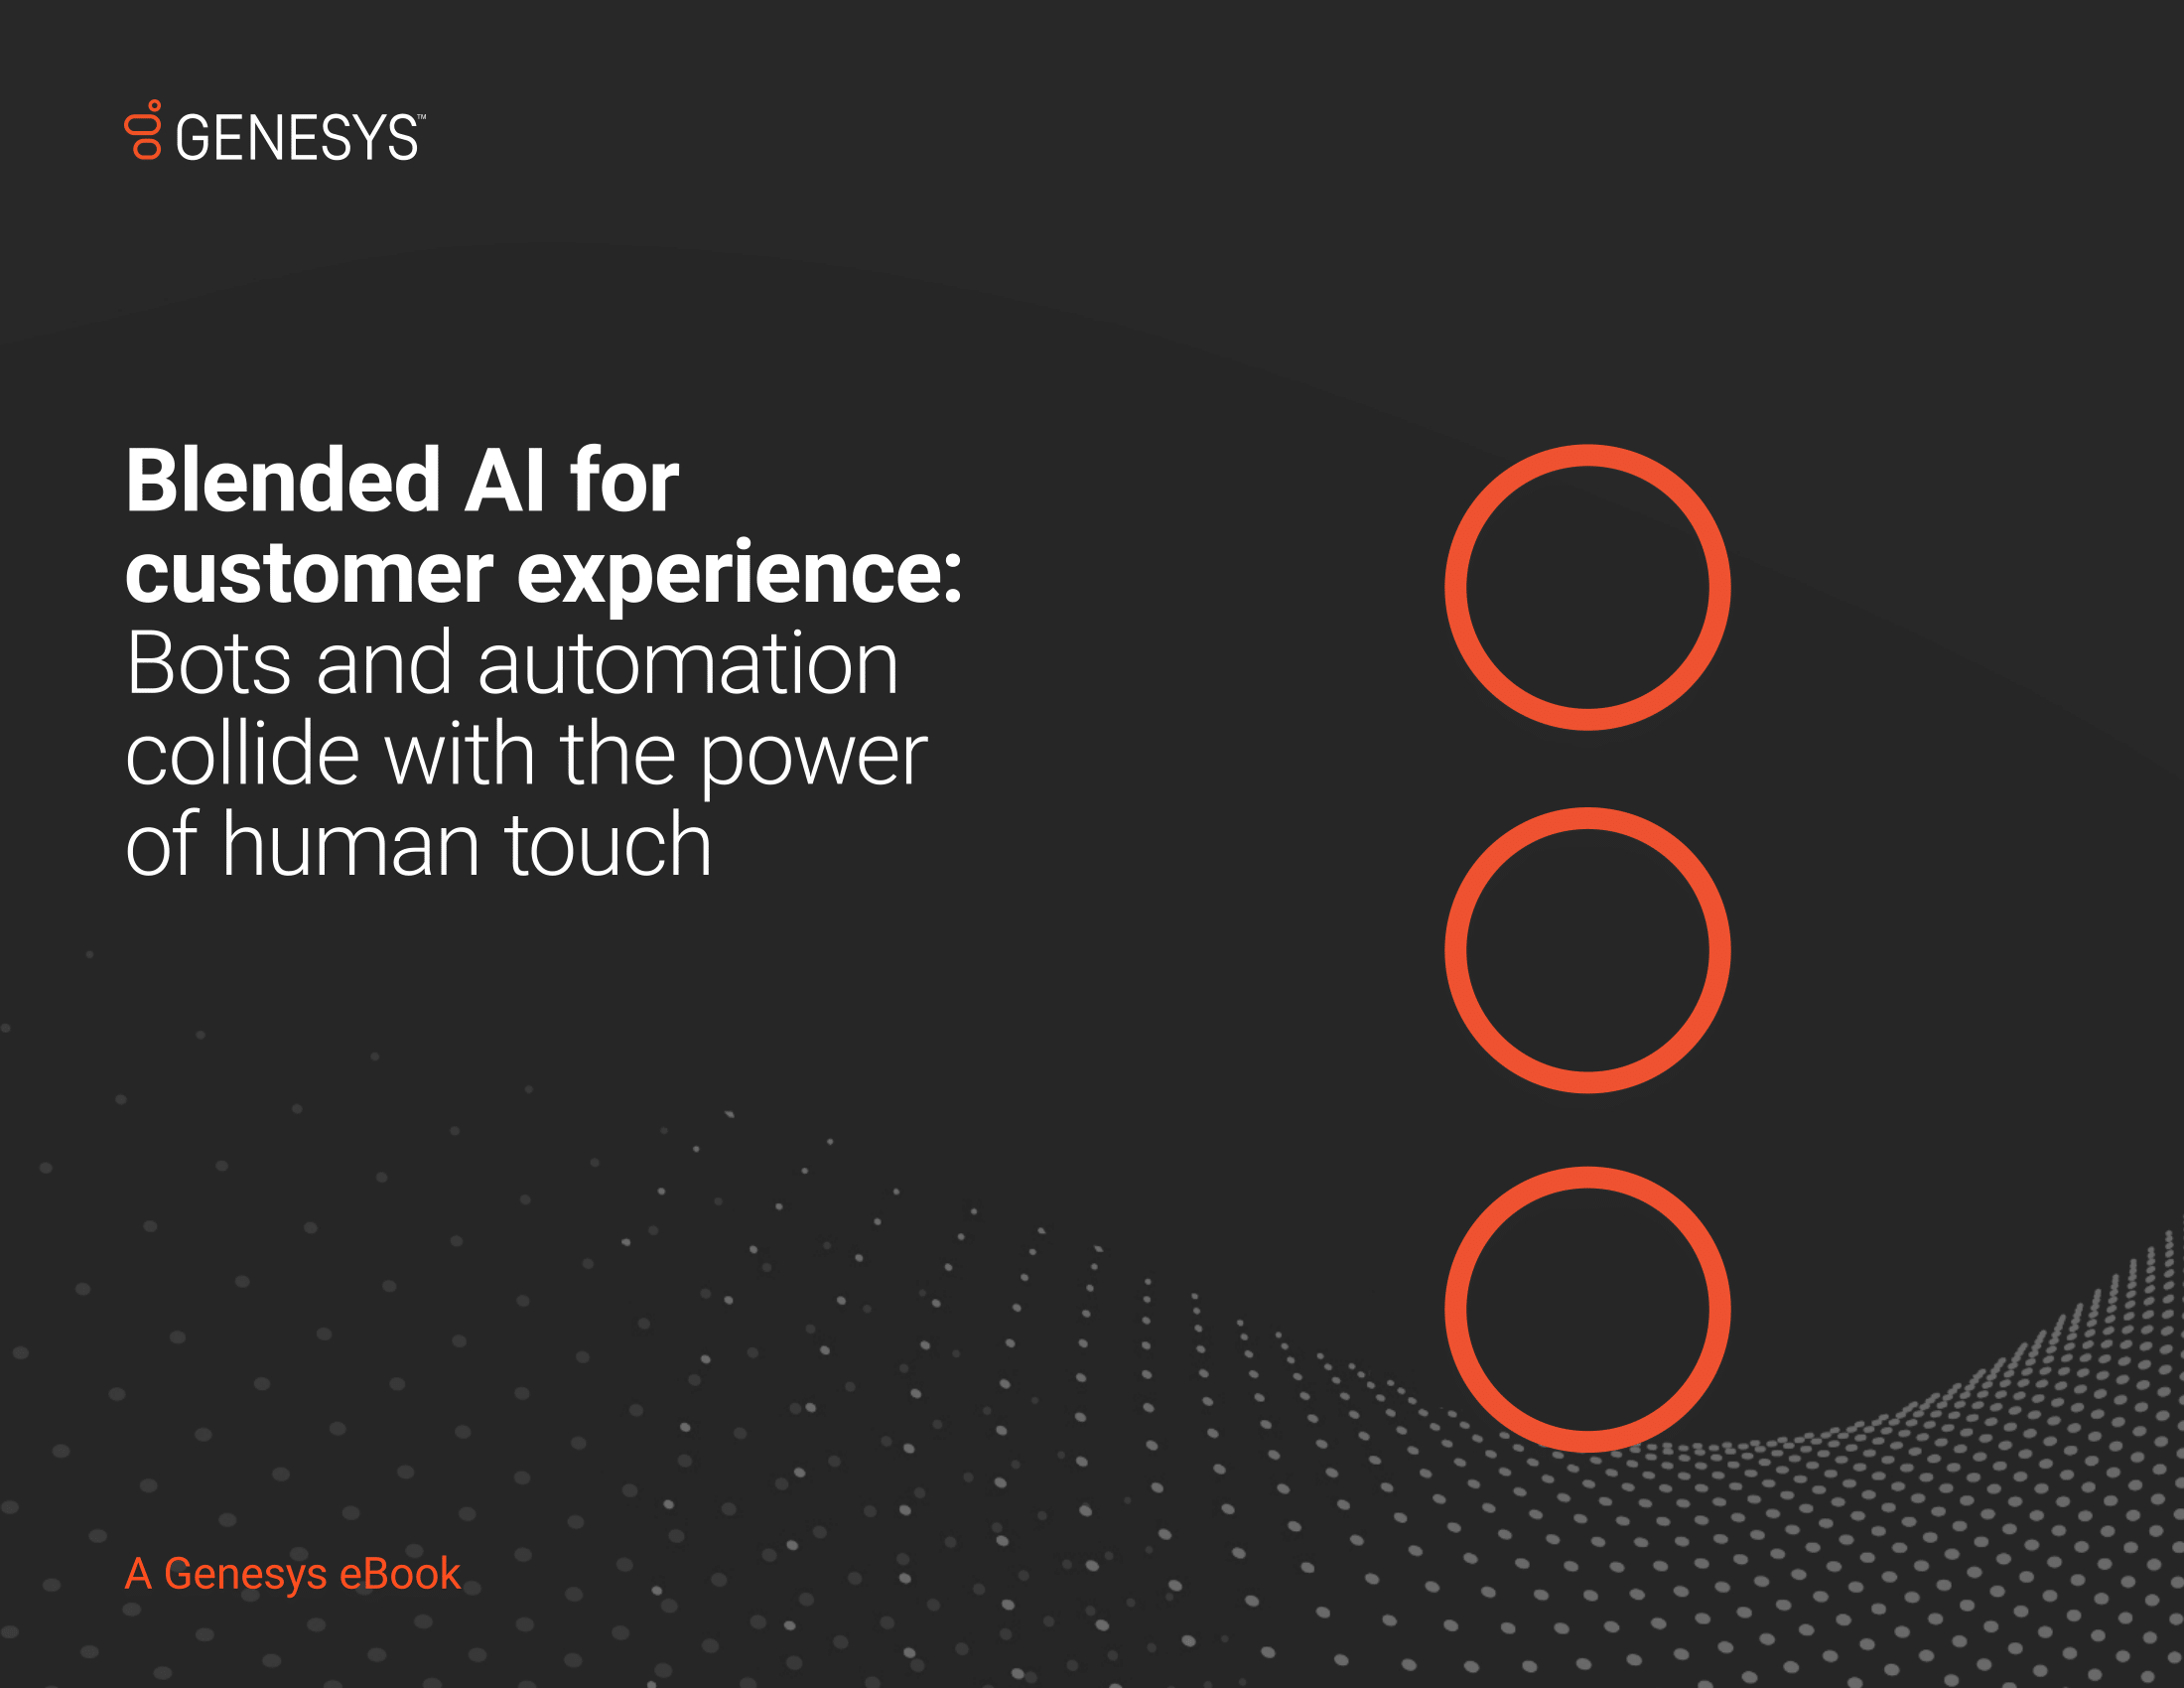 blended-ai-for-customer-experience